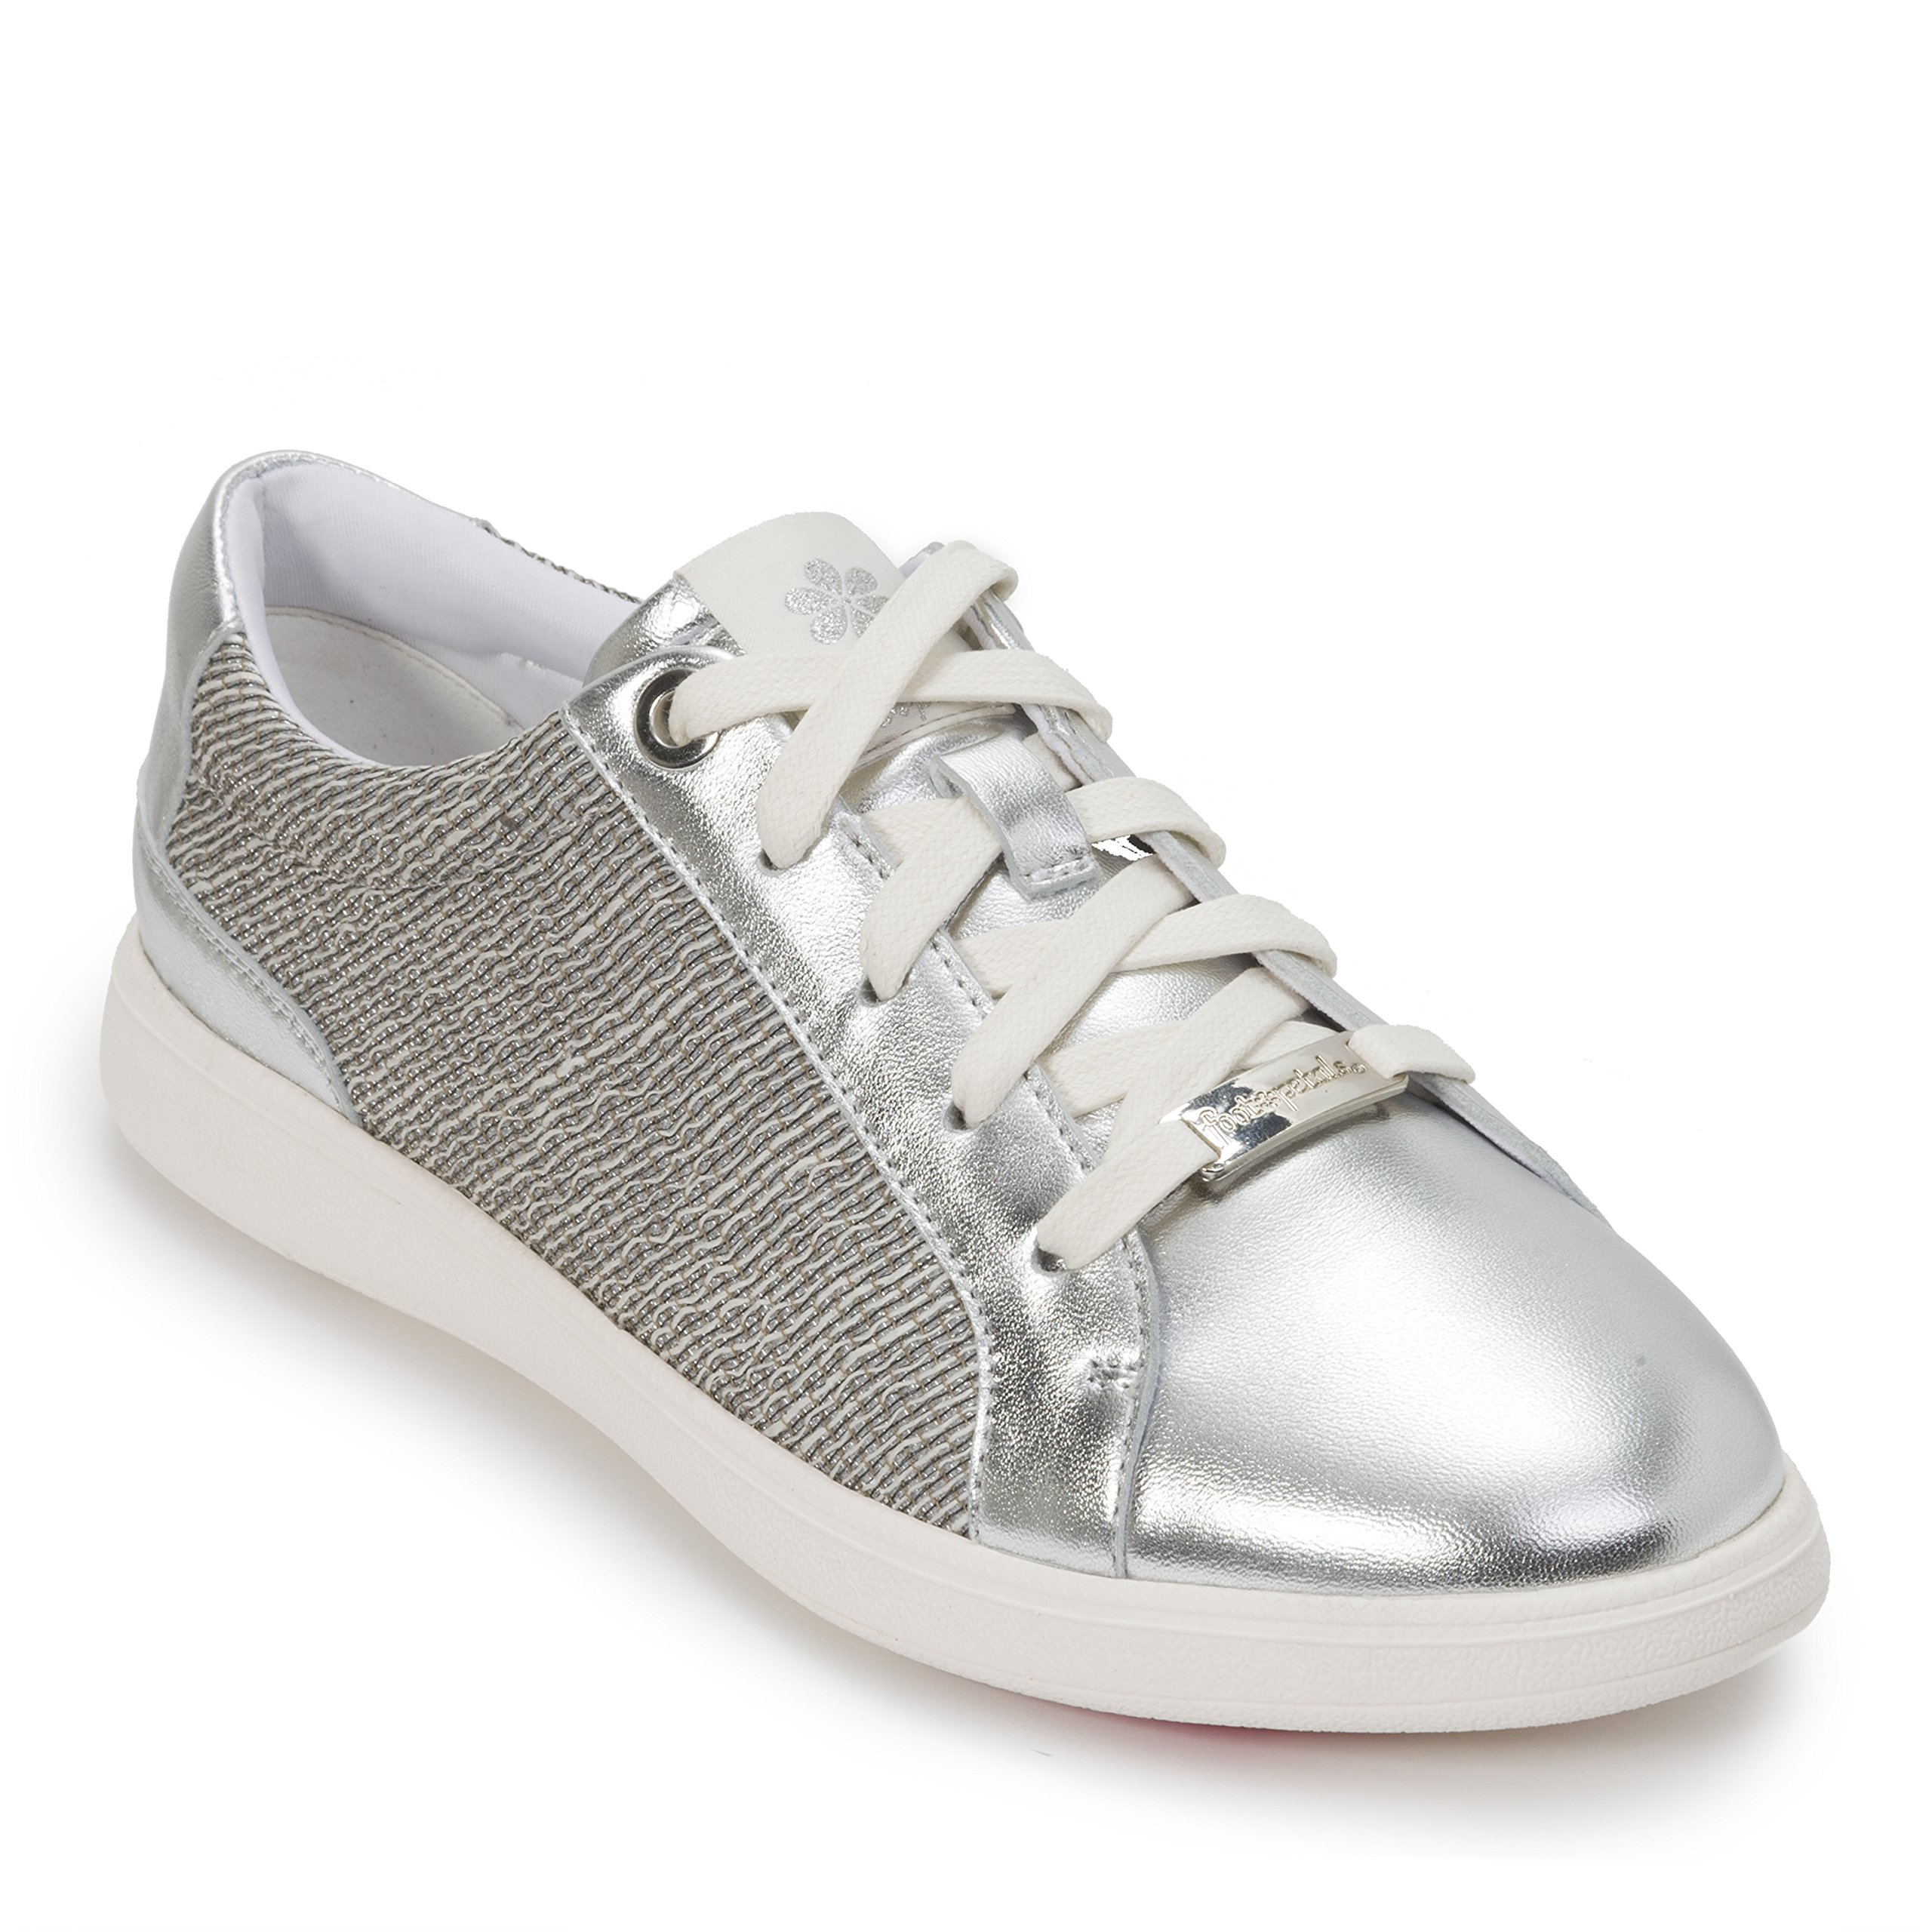 Foot Petals Cushionology Andi Lace up Silver Size 8H